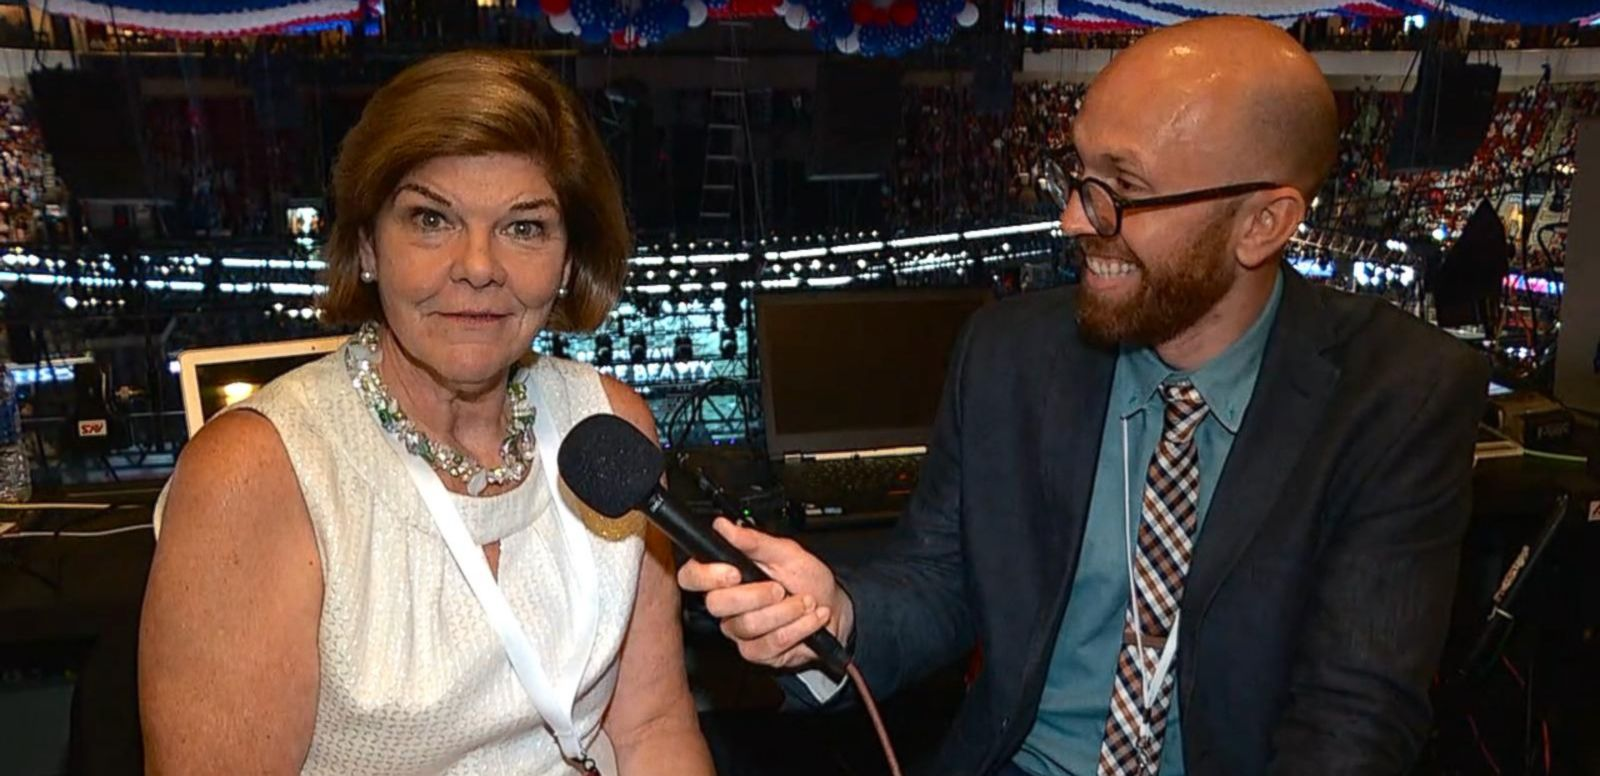 VIDEO: Democratic National Conventions: Past and Present